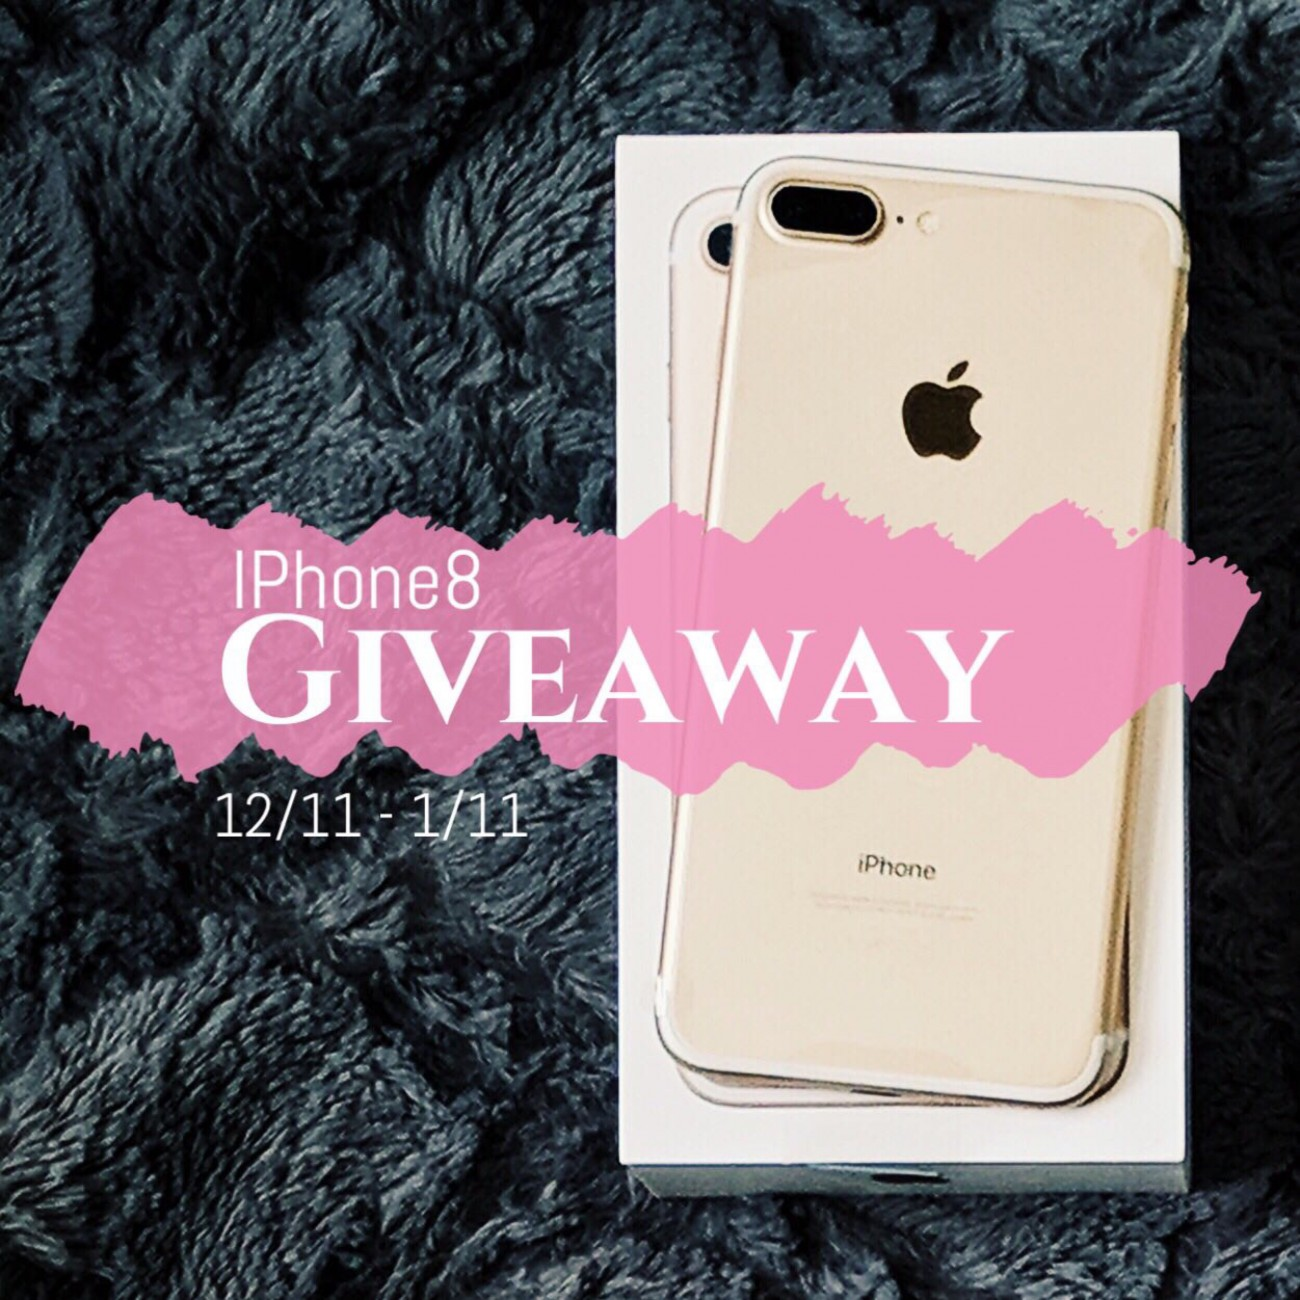 Iphone8 Giveaway